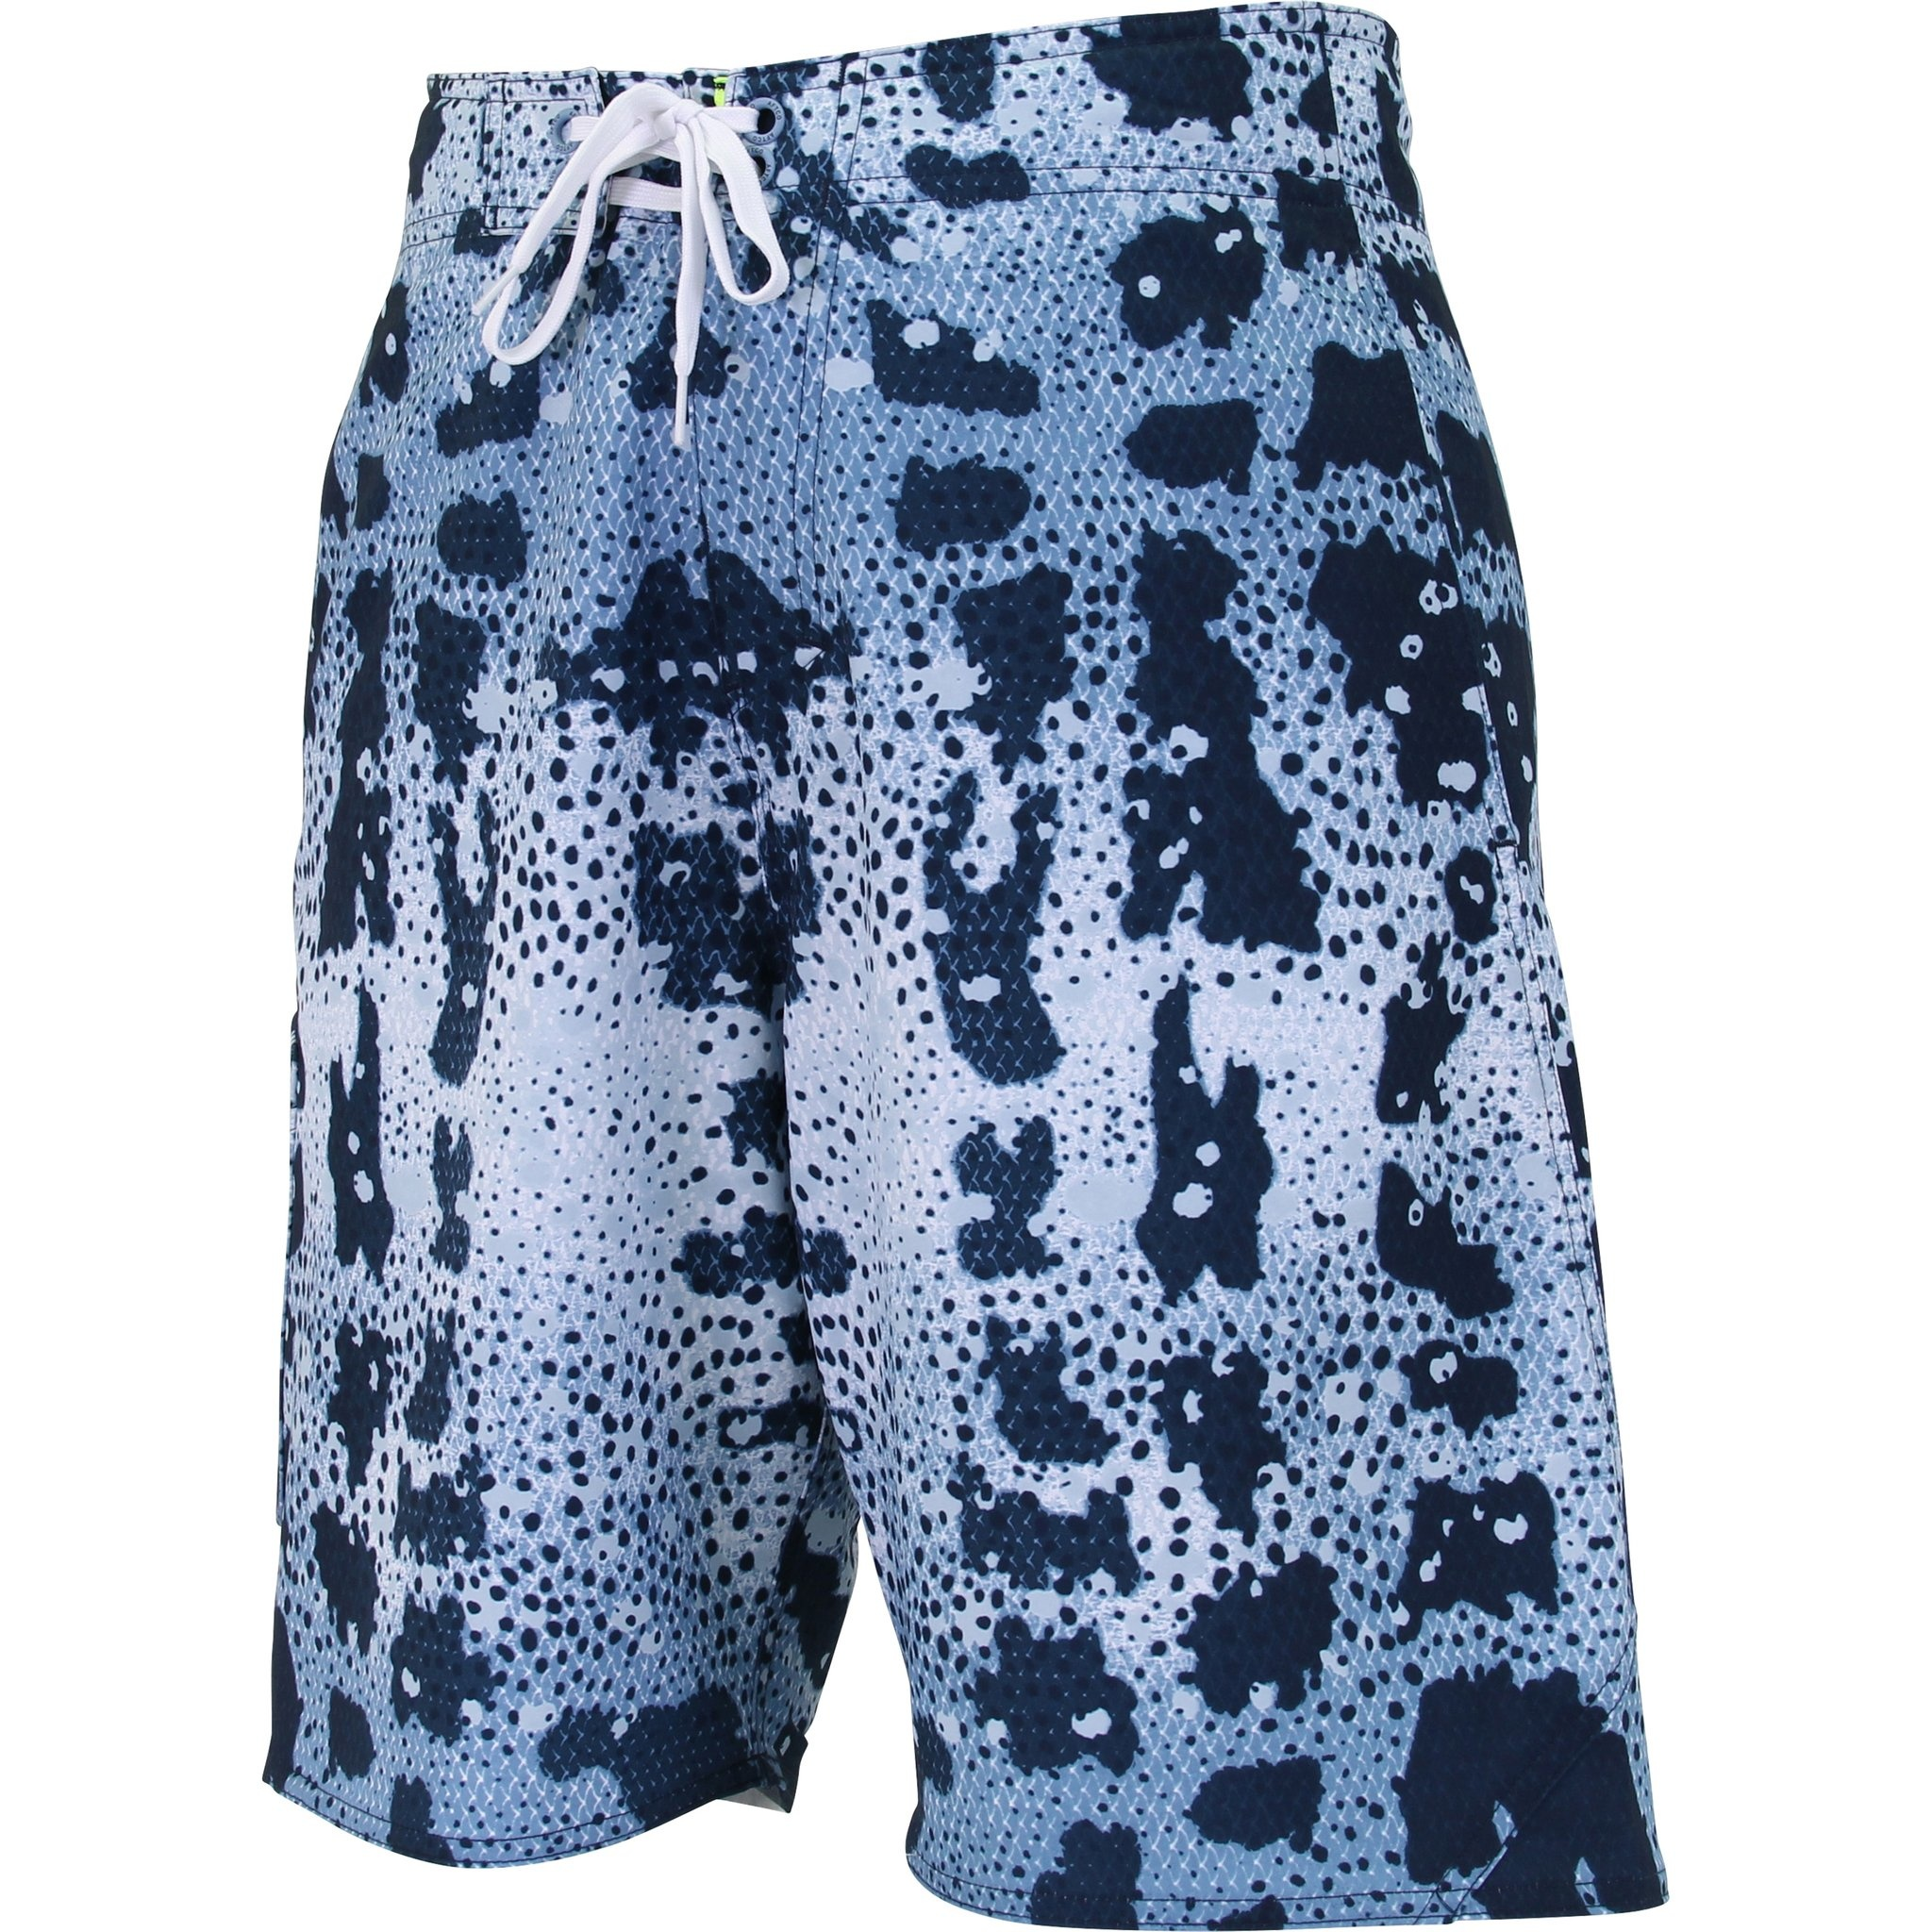 Aftco Grouper Board Shorts Blue